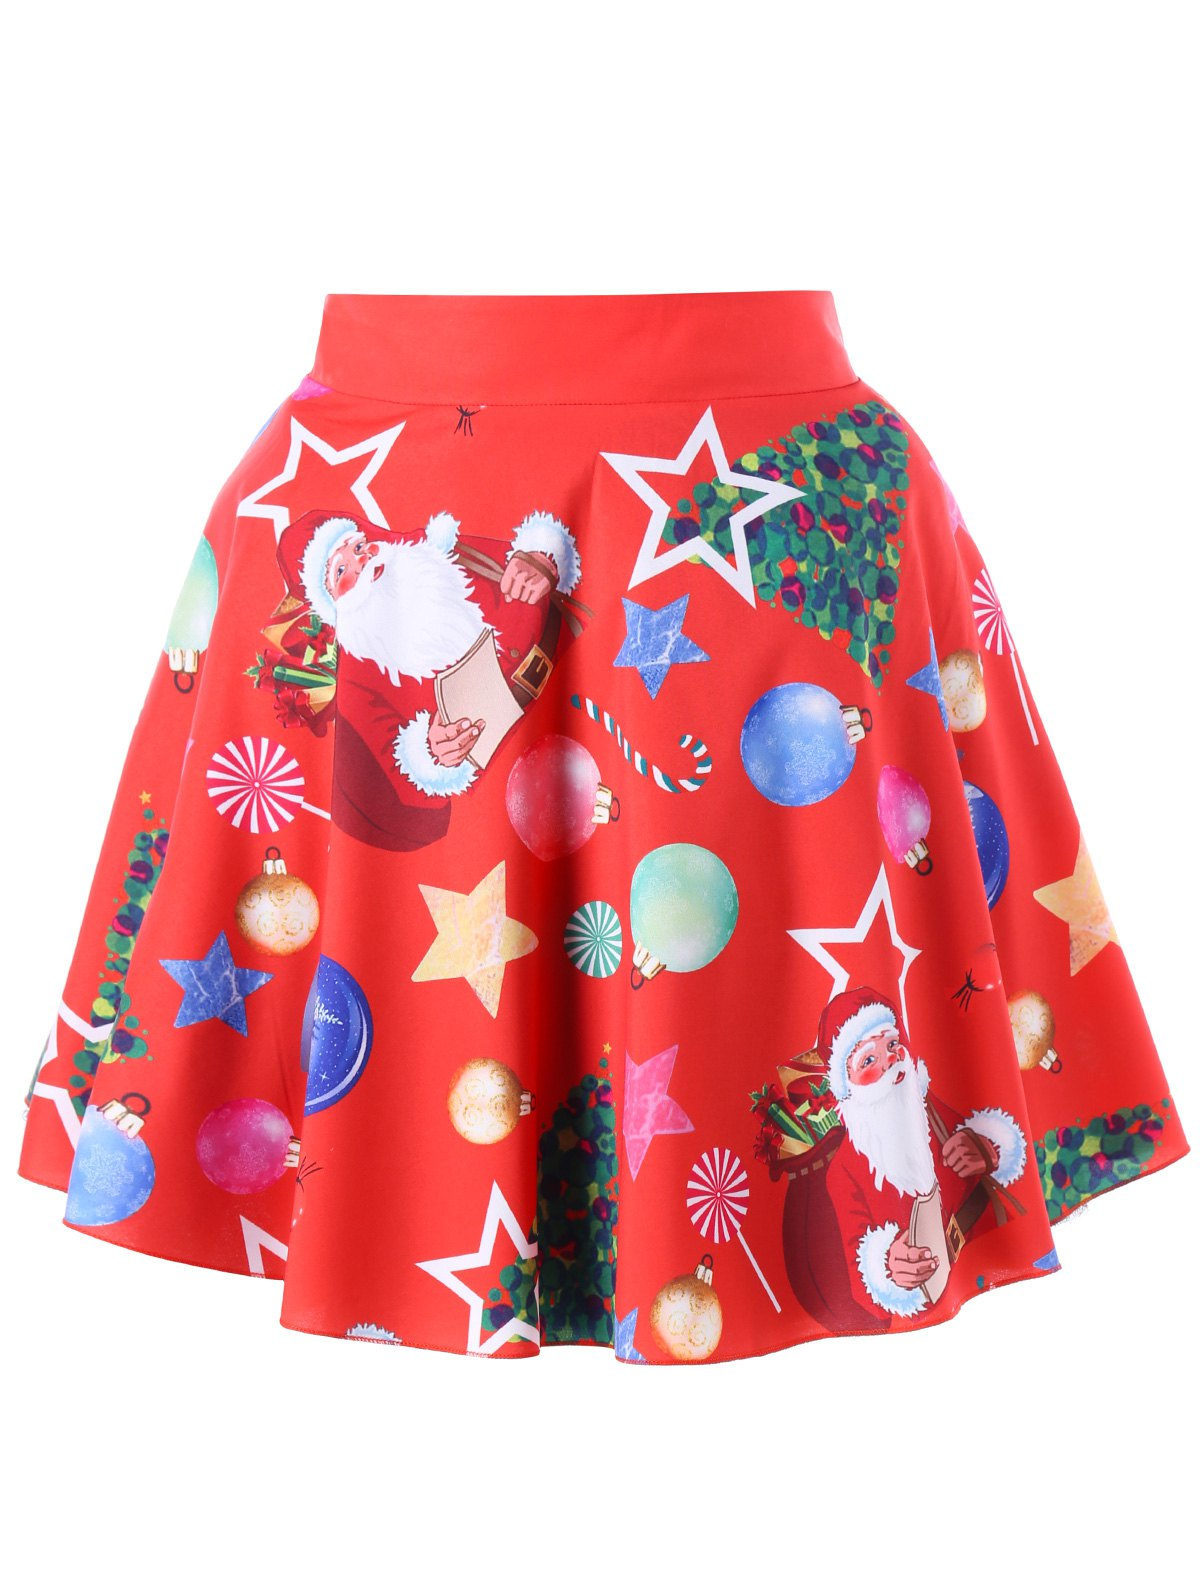 Sale Christmas Plus Size Santa Claus Vintage Skirt